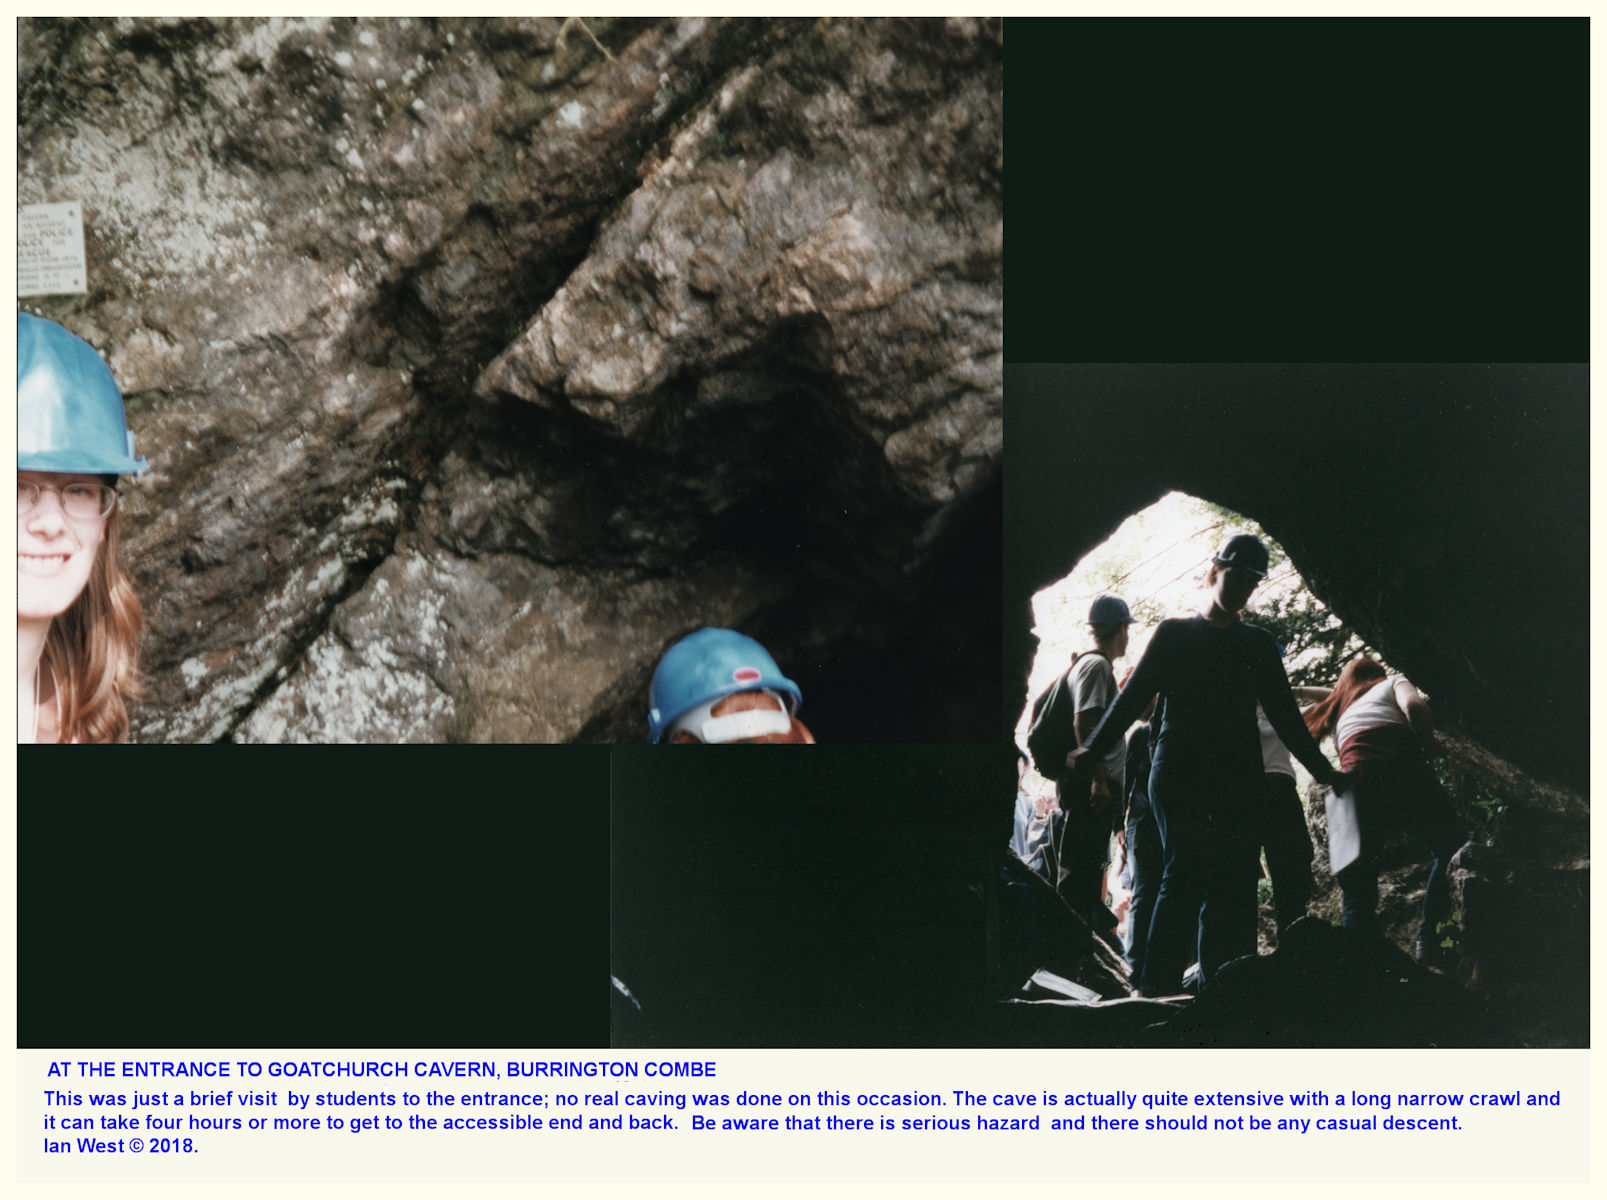 At the entrance to Goatchurch Cavern, Burrington Combe, in 1998